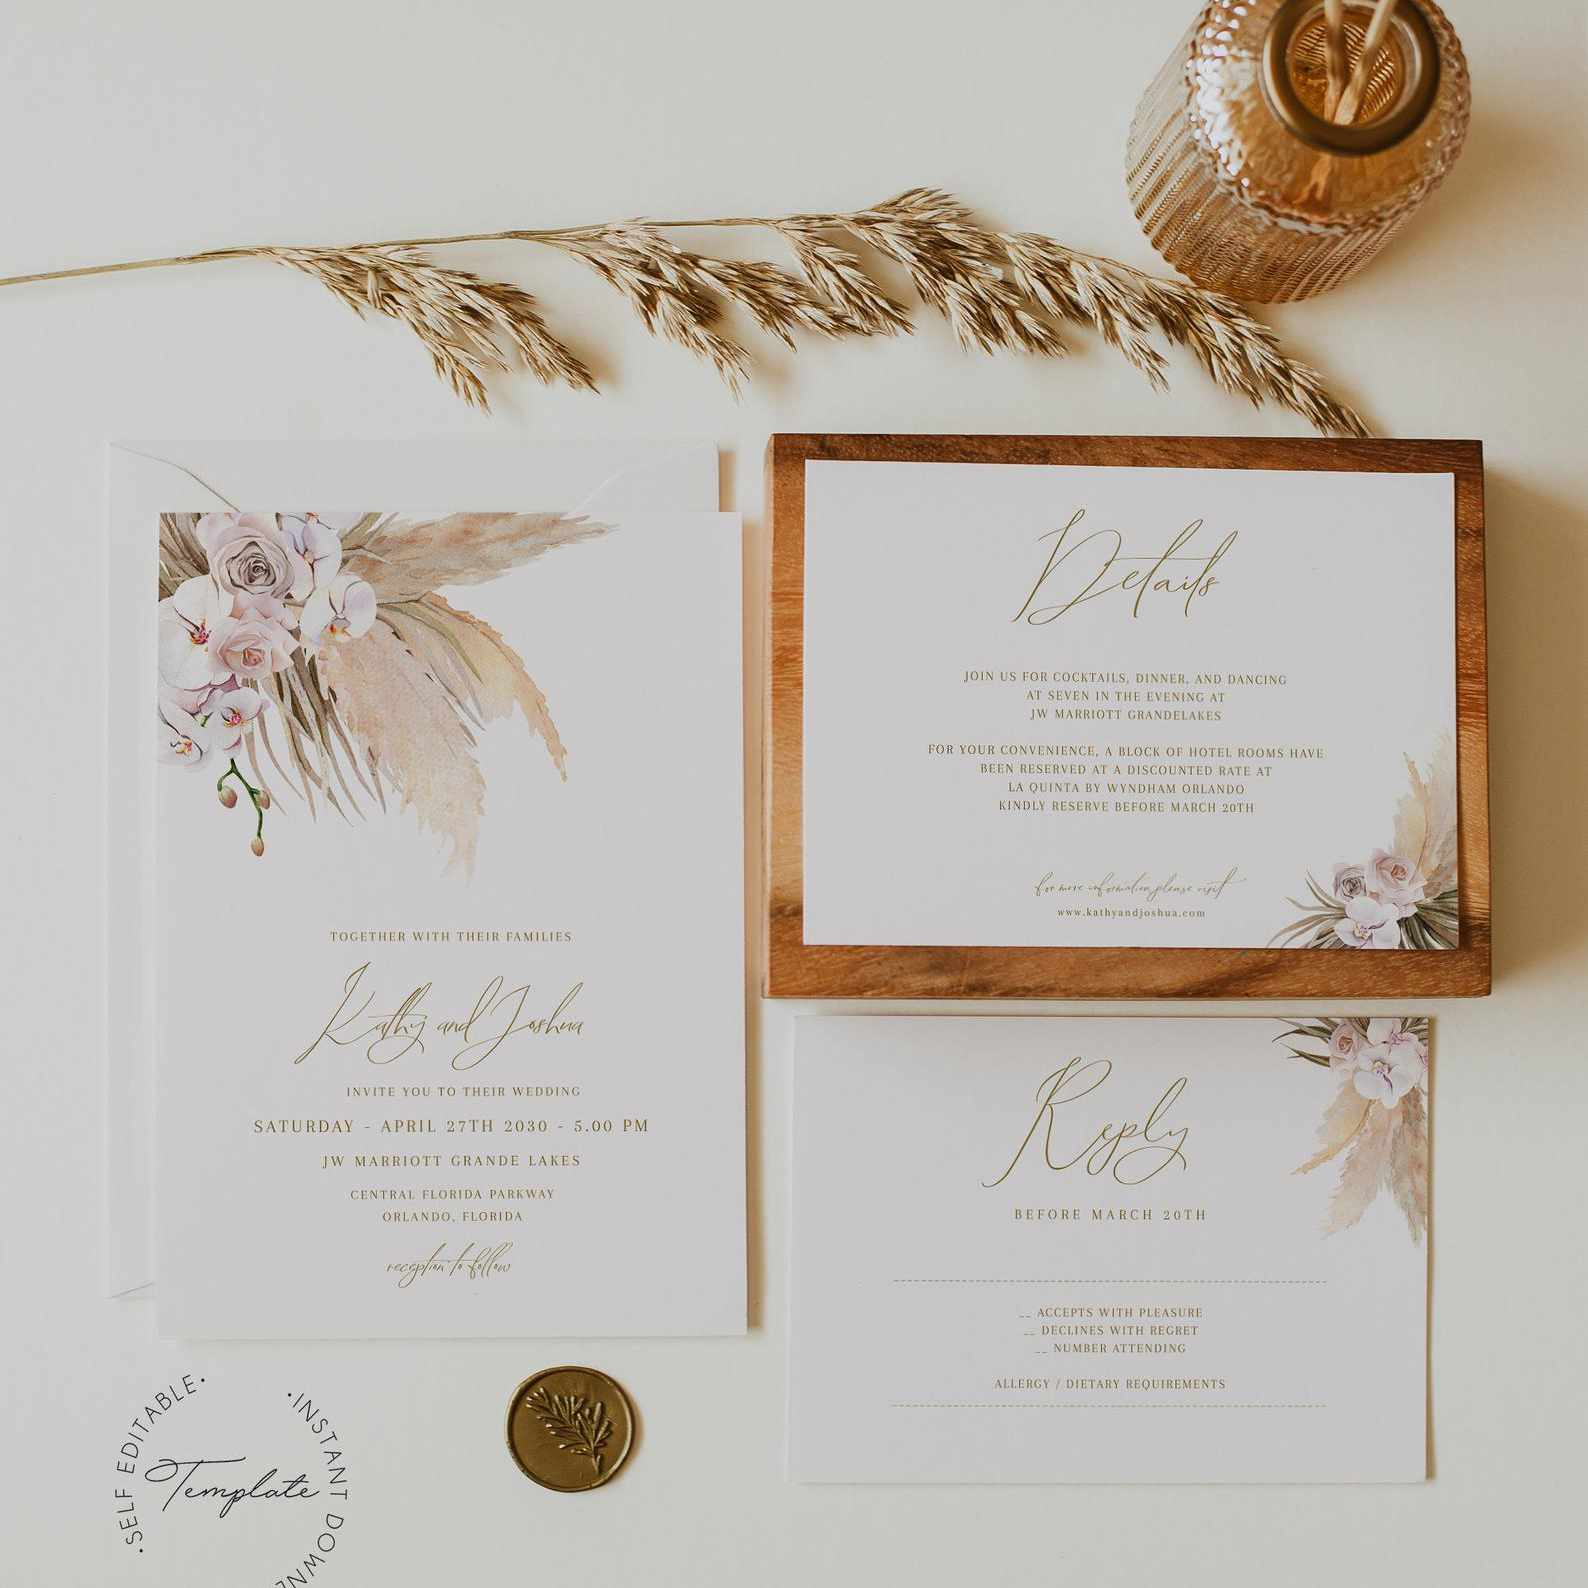 Rose outdoor wedding floral nature Wedding Invitations wildflowers printed or printable garden